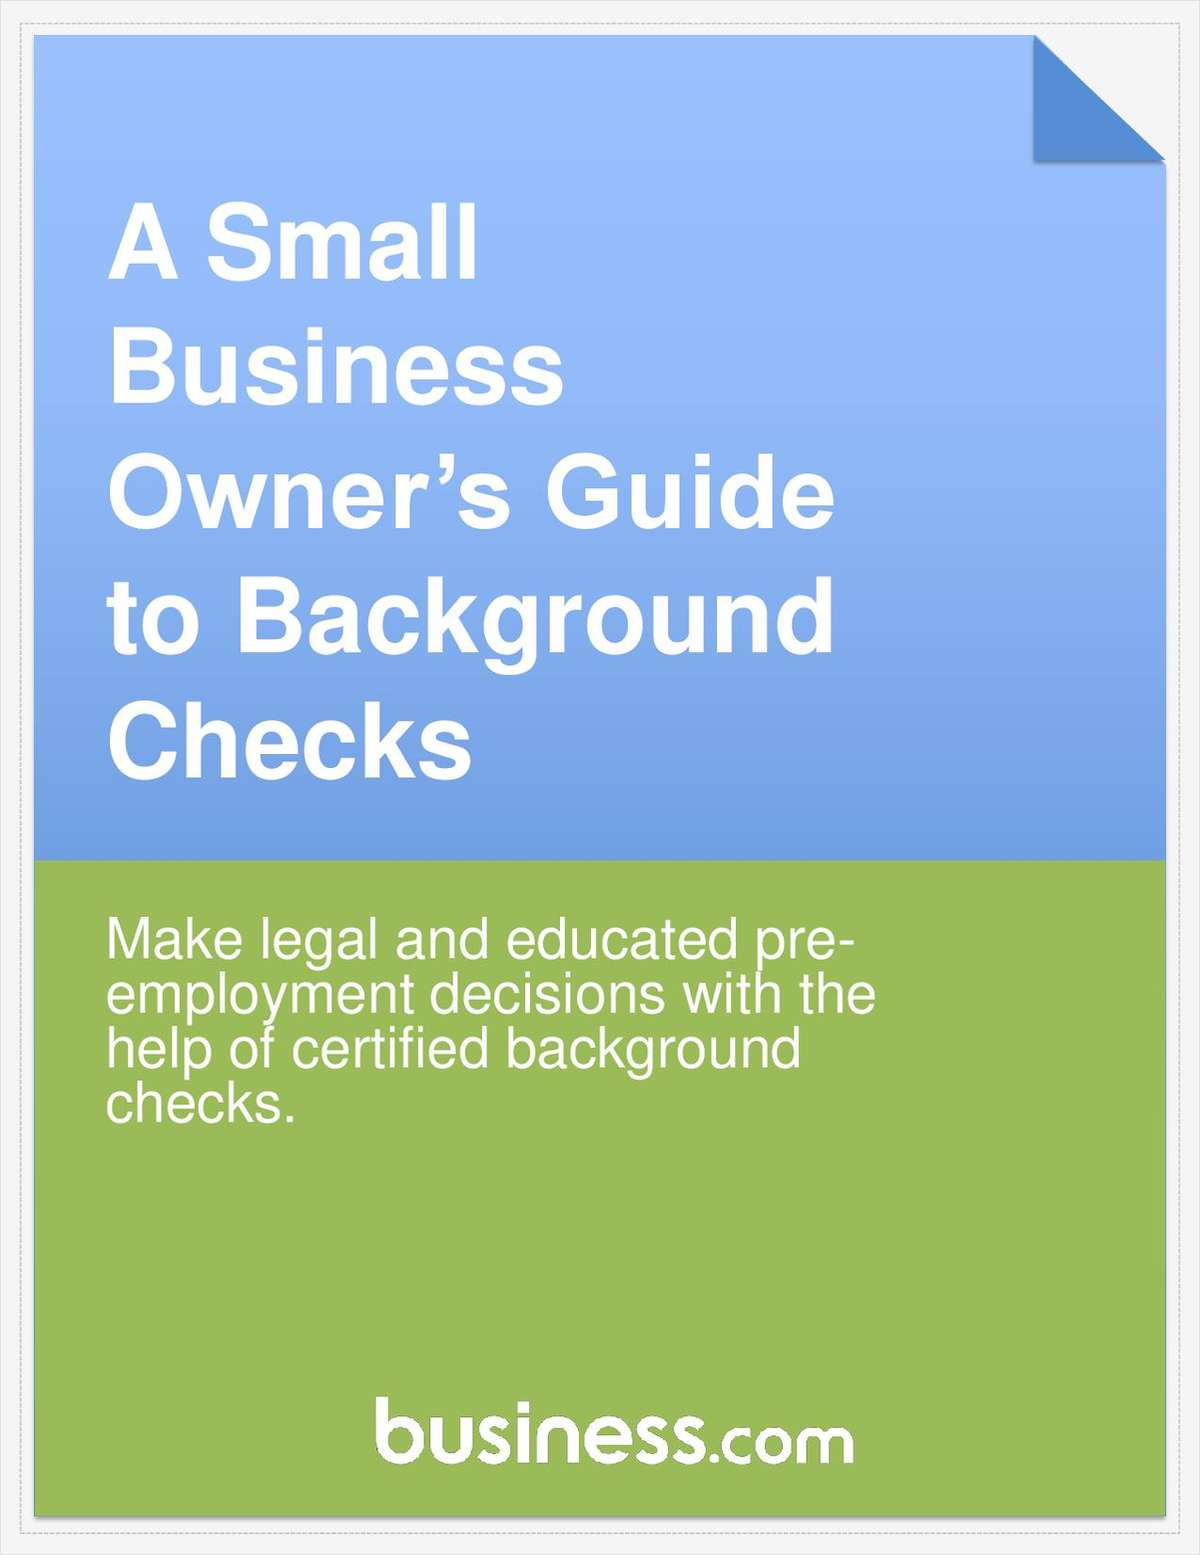 A Small Business Owner's Guide to Background Checks